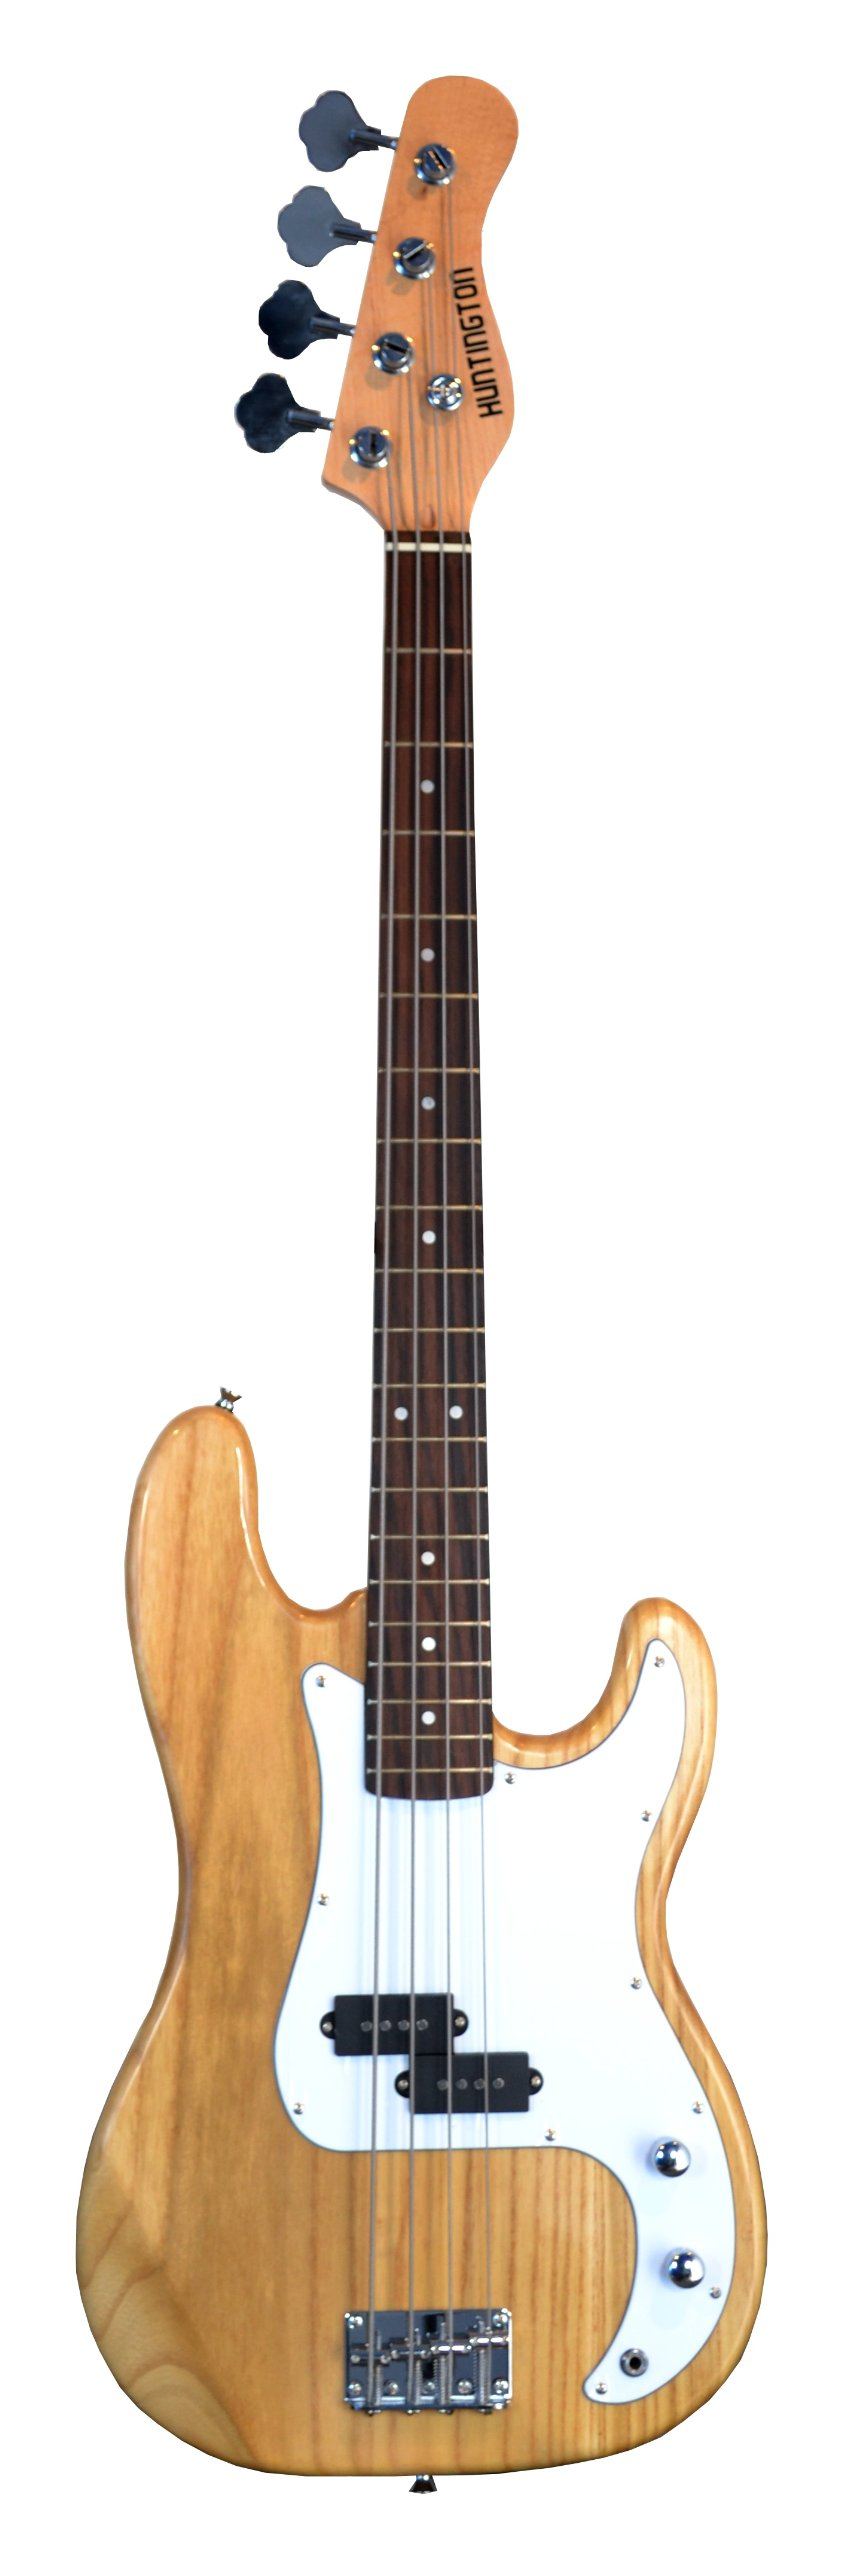 Full Size 4 String Precision P Electric Bass Guitar NATURAL with Gig Bag and Accessories (Includes, Strap, String, & DirectlyCheap(TM) Translucent Blue Medium Guitar Pick)